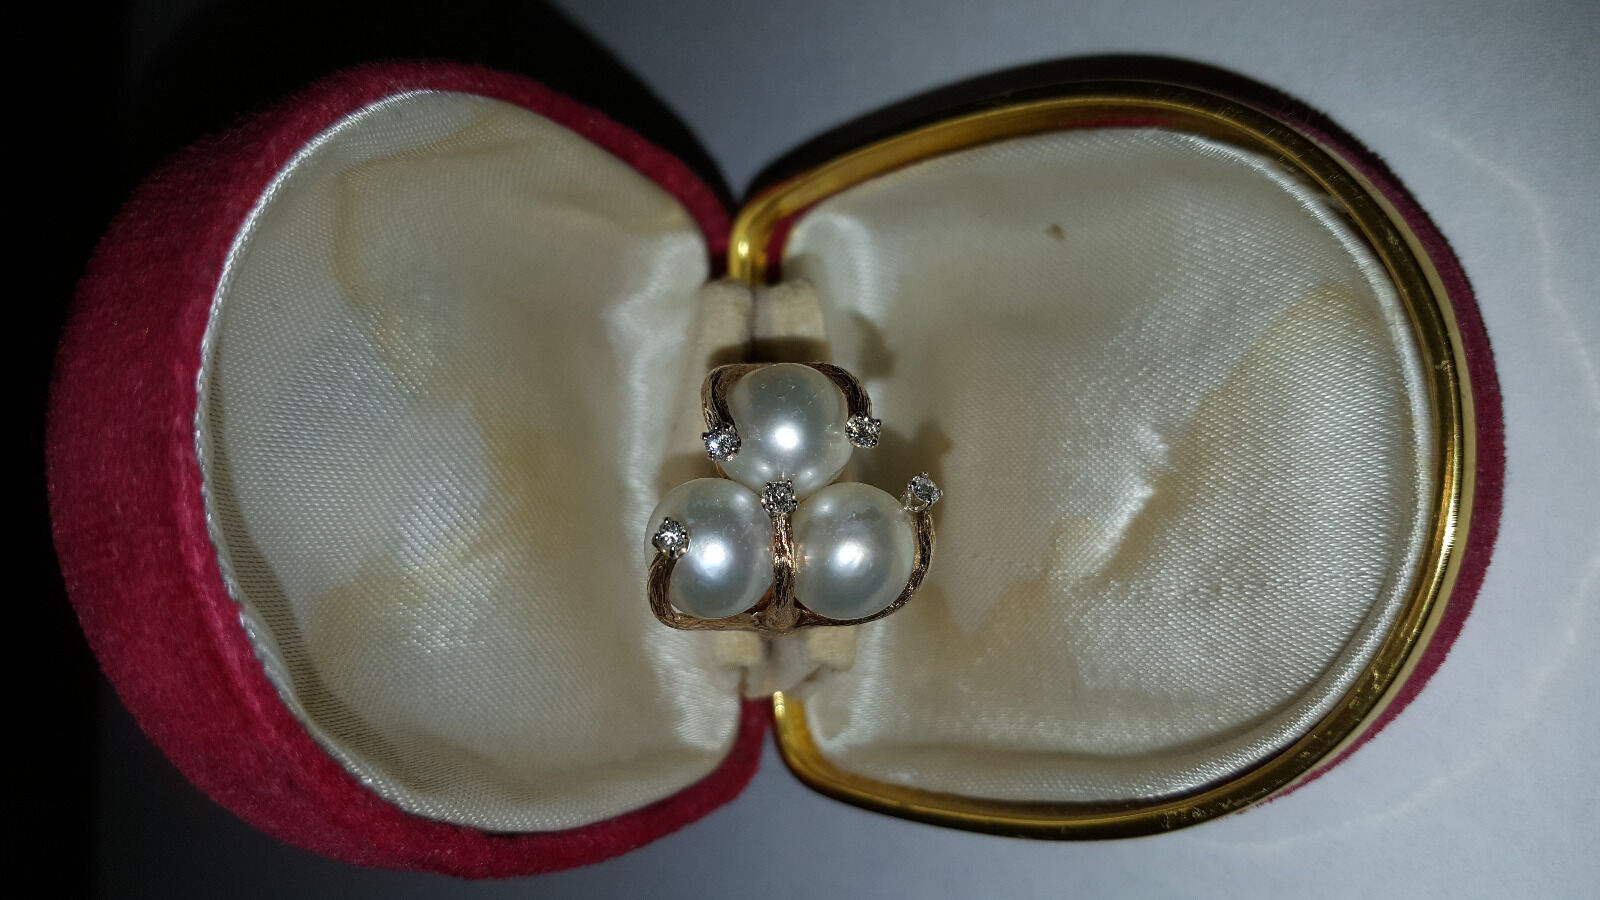 Beautiful gold ring with large pearls and diamonds